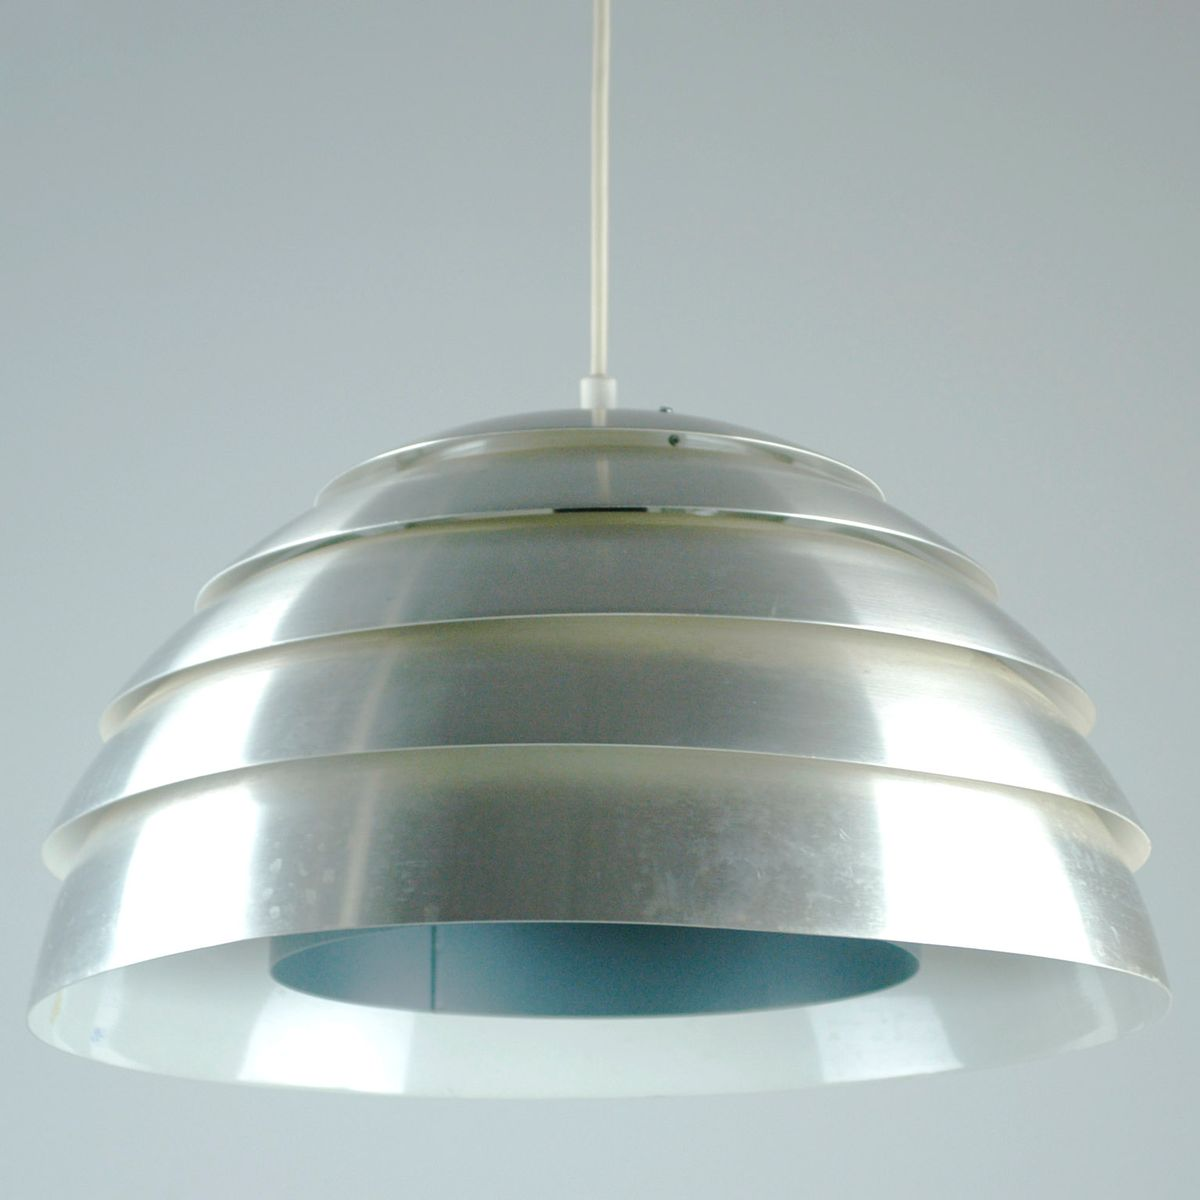 dome sq deep gibson karlovasitis etch pendant lighting web products sarah hr light d nicholas collection designbythem